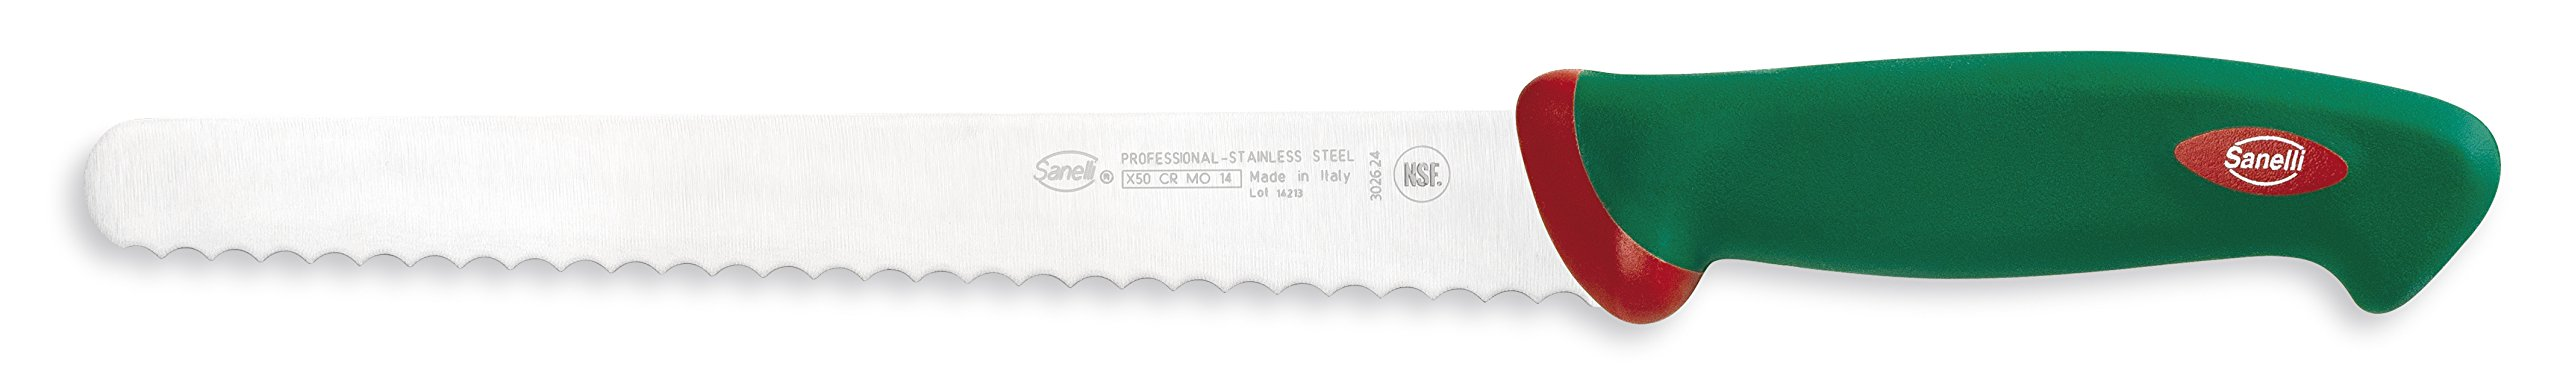 """Sanelli Premana Professional Bread Knife, 24cm/9.44"""", Green 1 The exclusive ergonomic handle design is the result of special studies carried out at qualified University Institutes to ensure the best balance and grip The handle is perfectly balanced with the blade; Semi-rigid serrated knife, for slicing bread, cakes, pizza The material used is non-toxic and complies with the European rules; Made in Italy"""